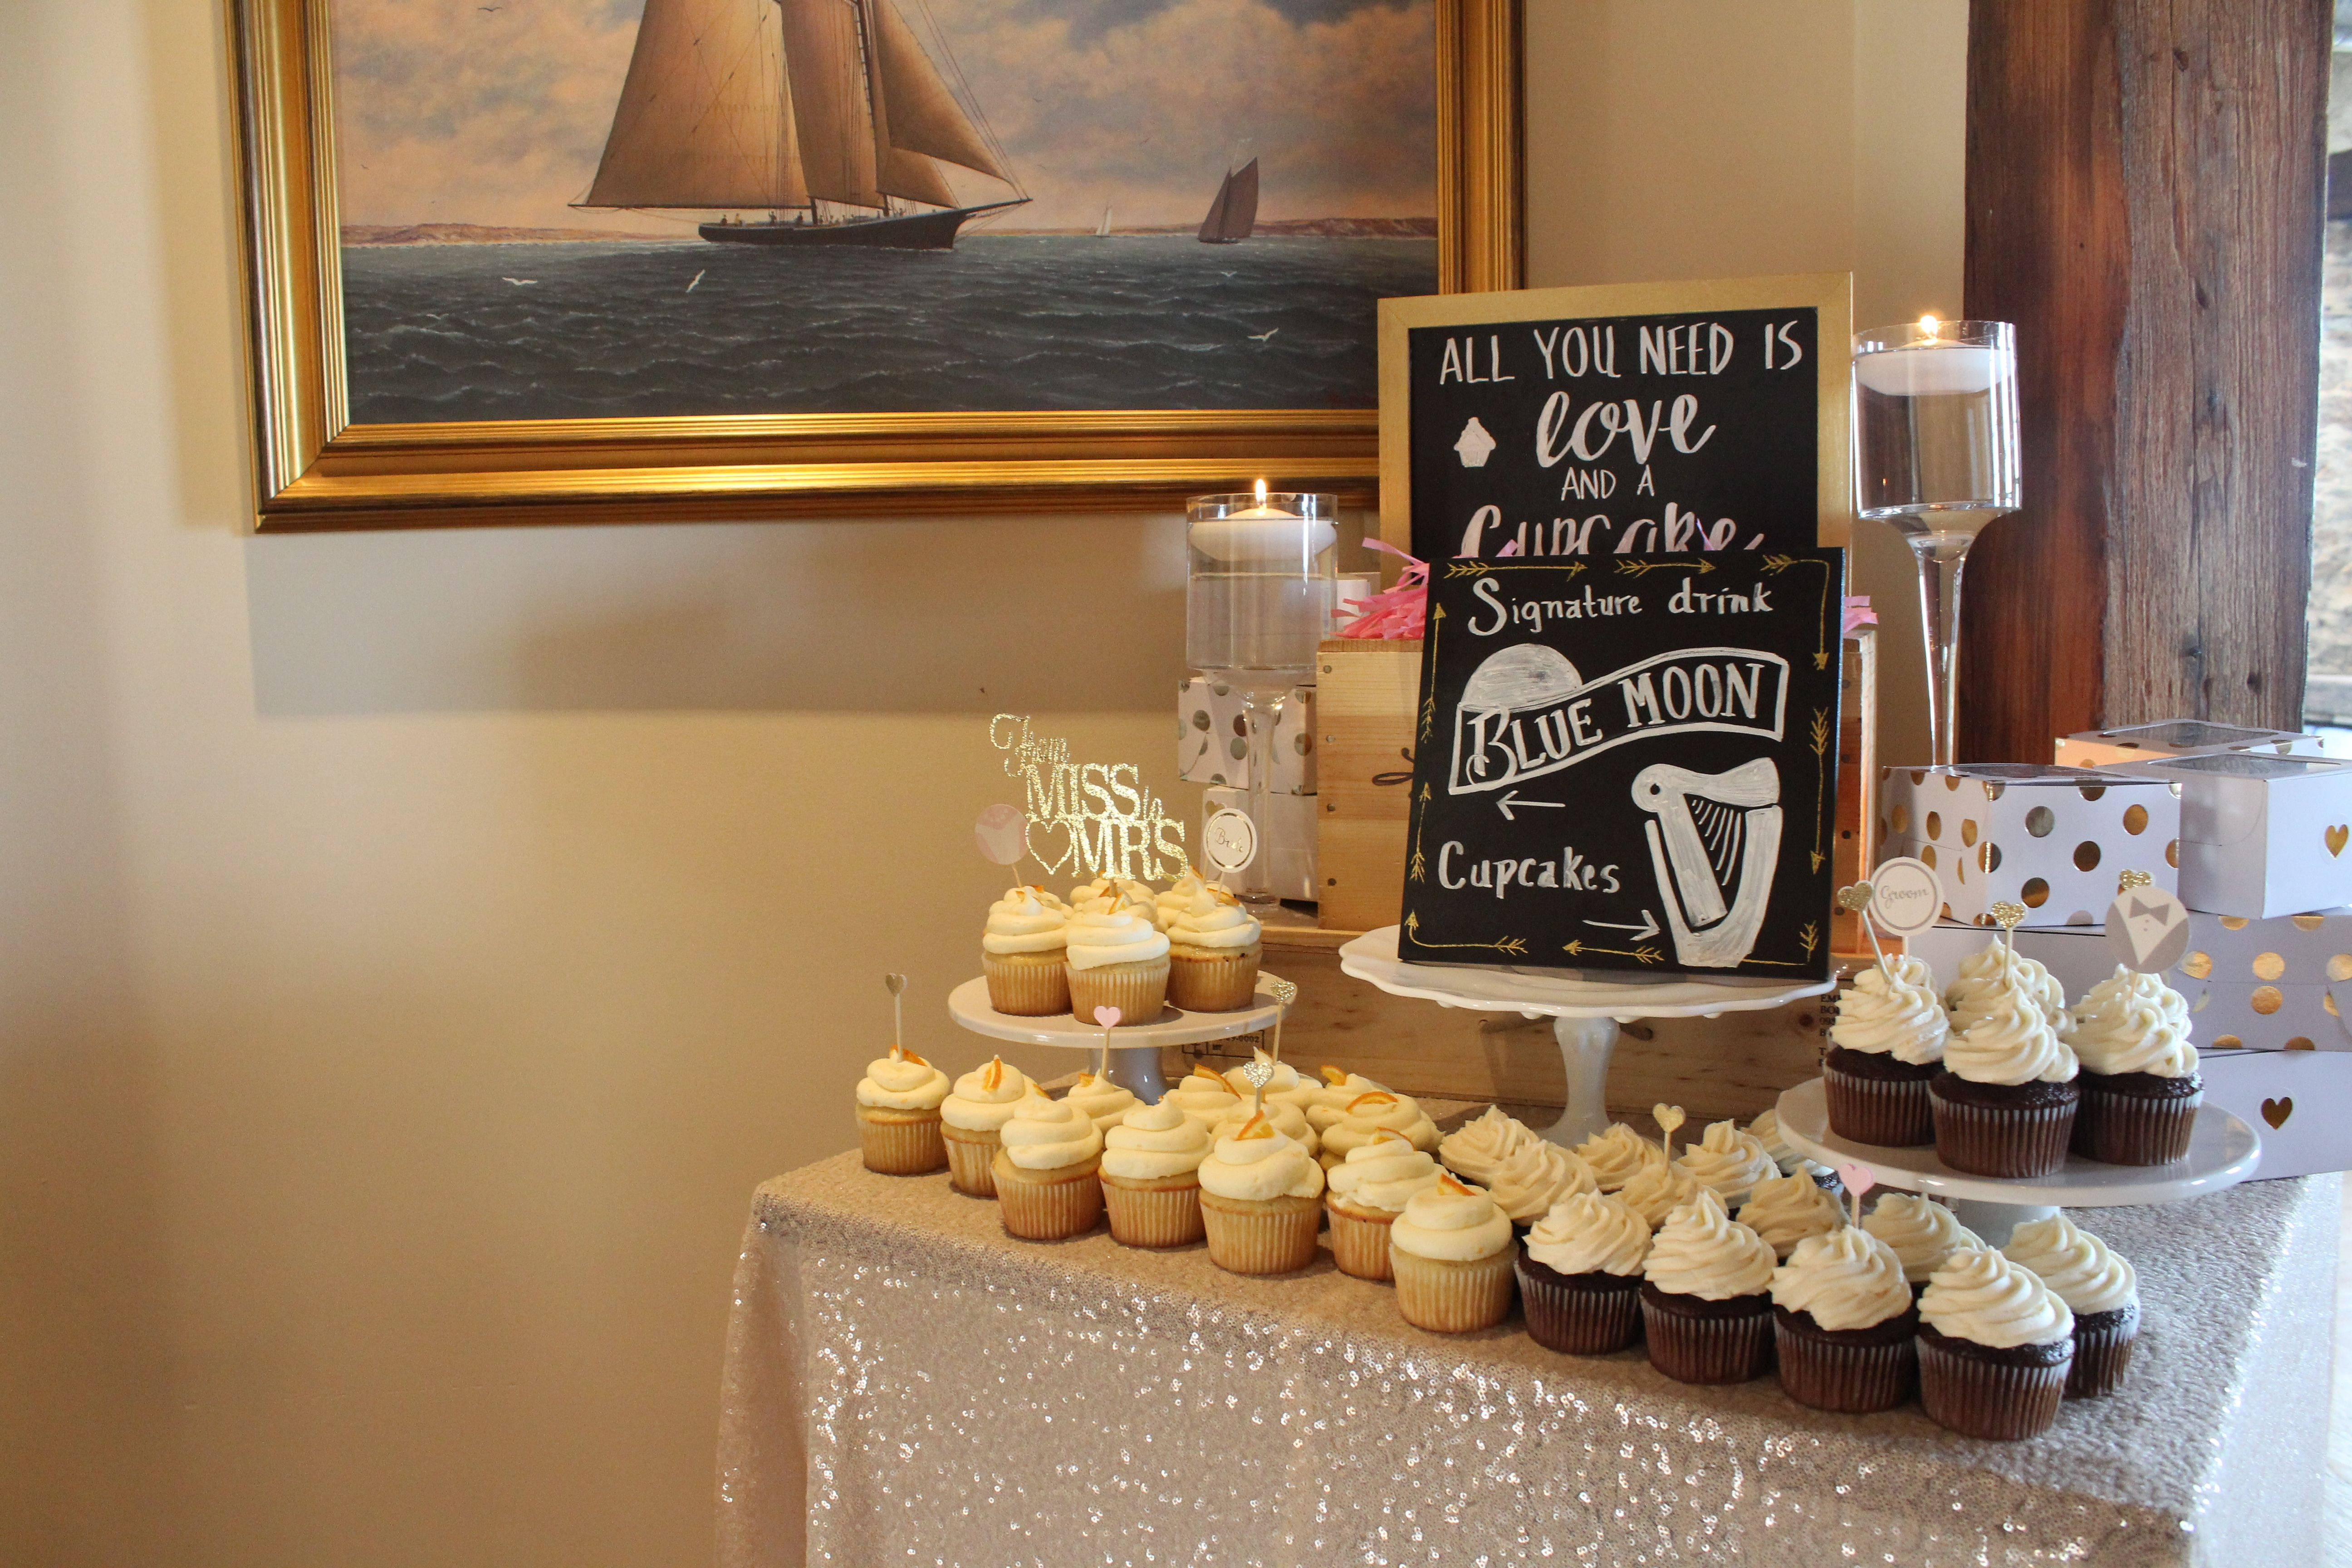 Sequins, cupcakes, chalkboard, cake stands, decorative boxes